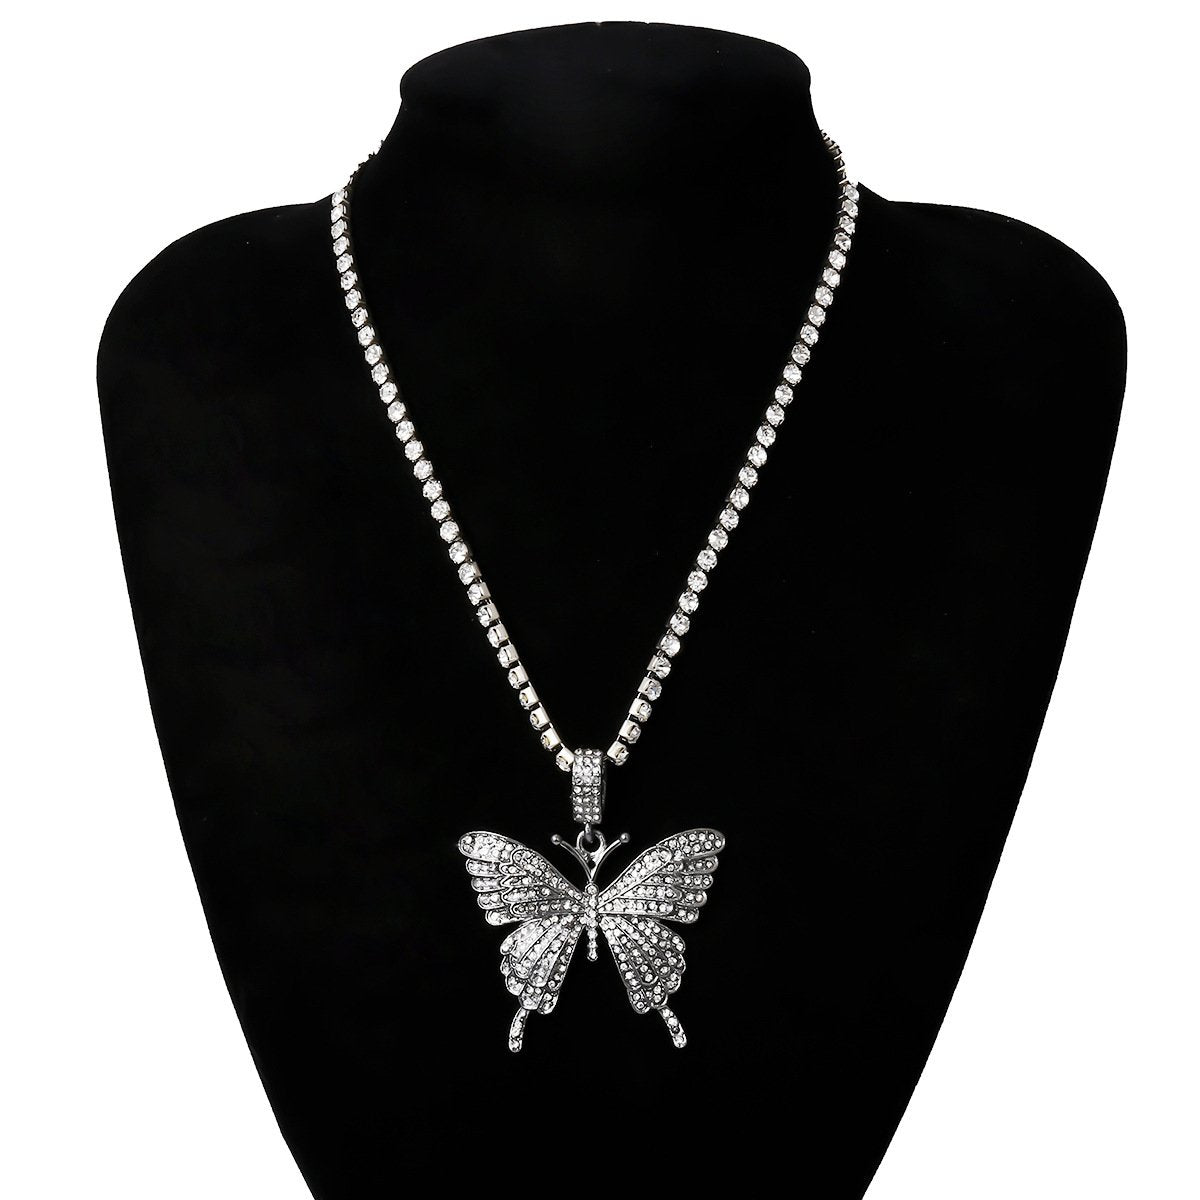 Butterfly Pendant Necklace Shiny Rhinestone Chain - Asia-Peak